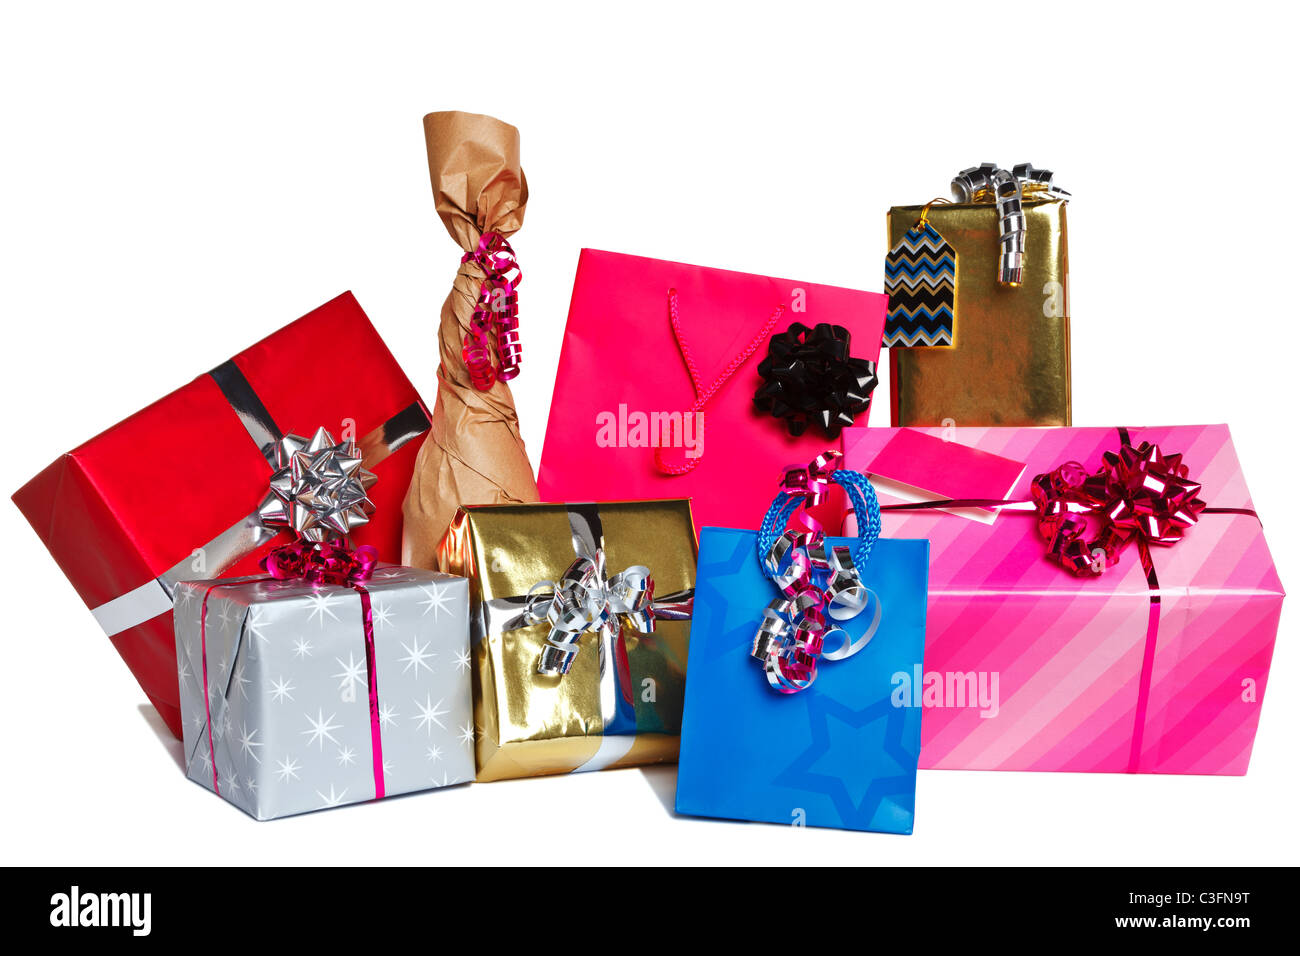 Photo of a group of wrapped gift presents cut out on a white background. - Stock Image